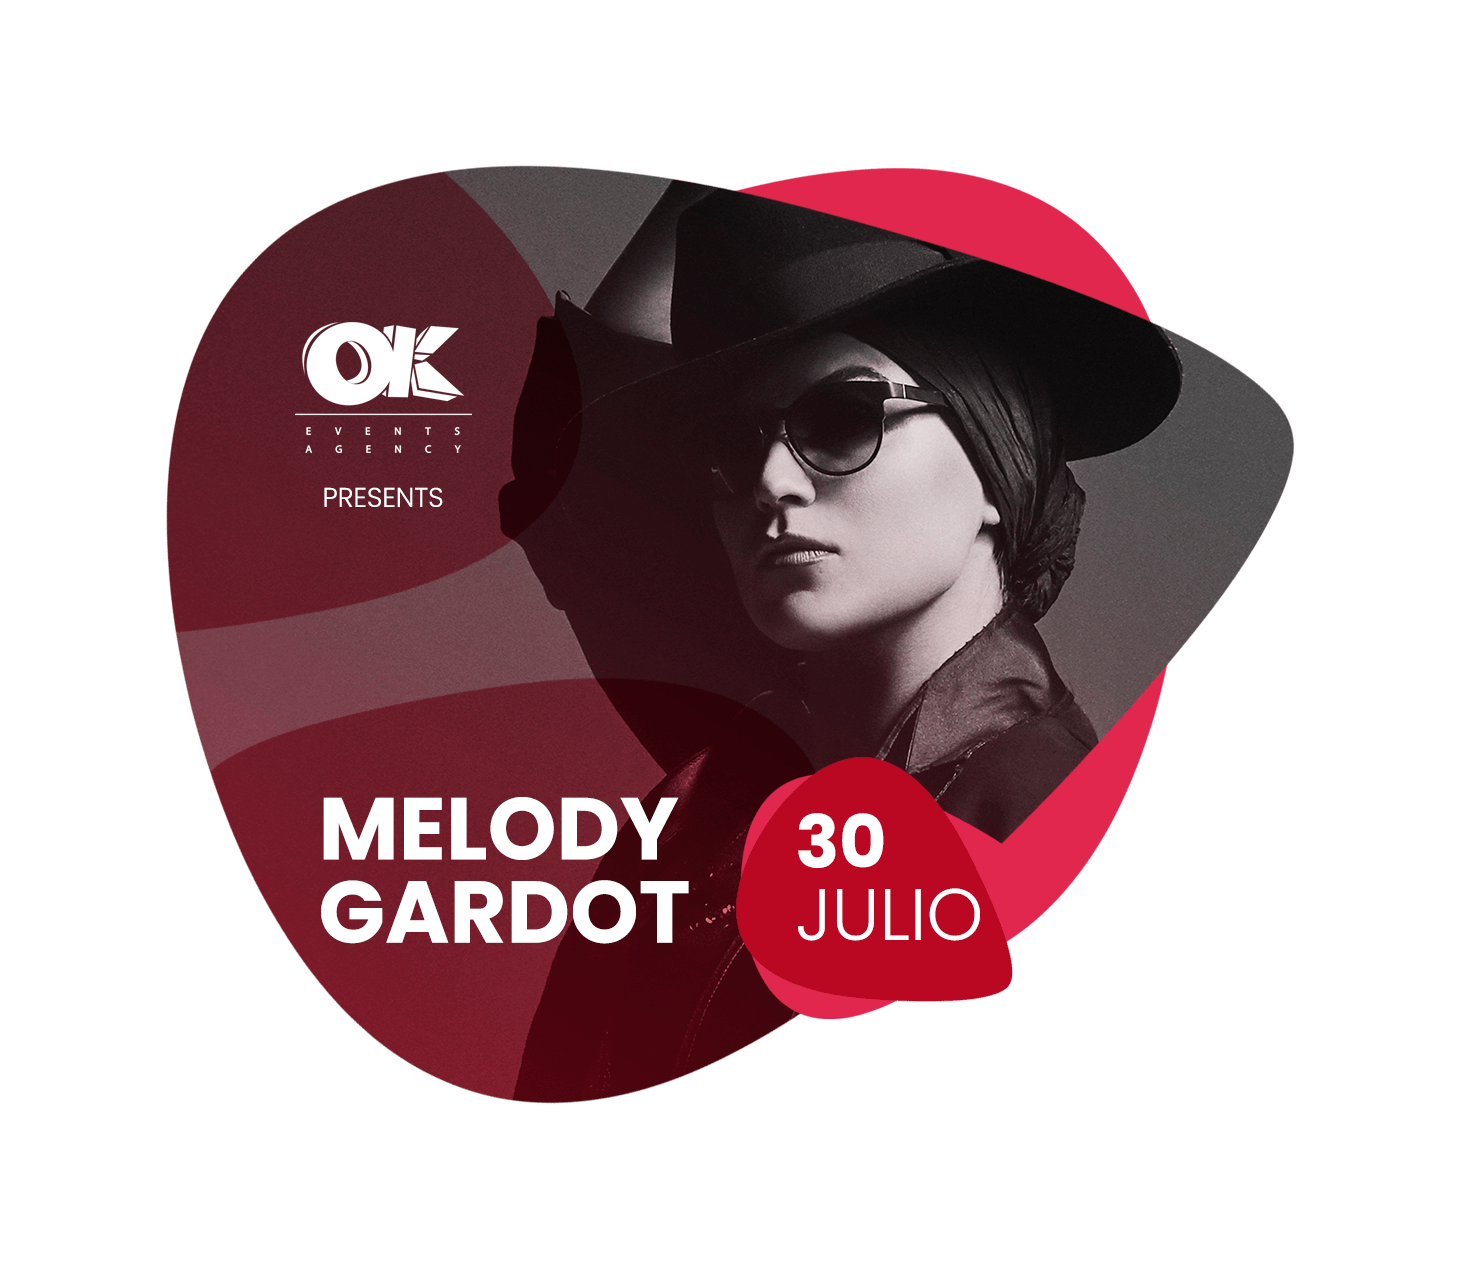 https://portadriano.com/musicfestival/wp-content/uploads/2019/05/MELODY.png